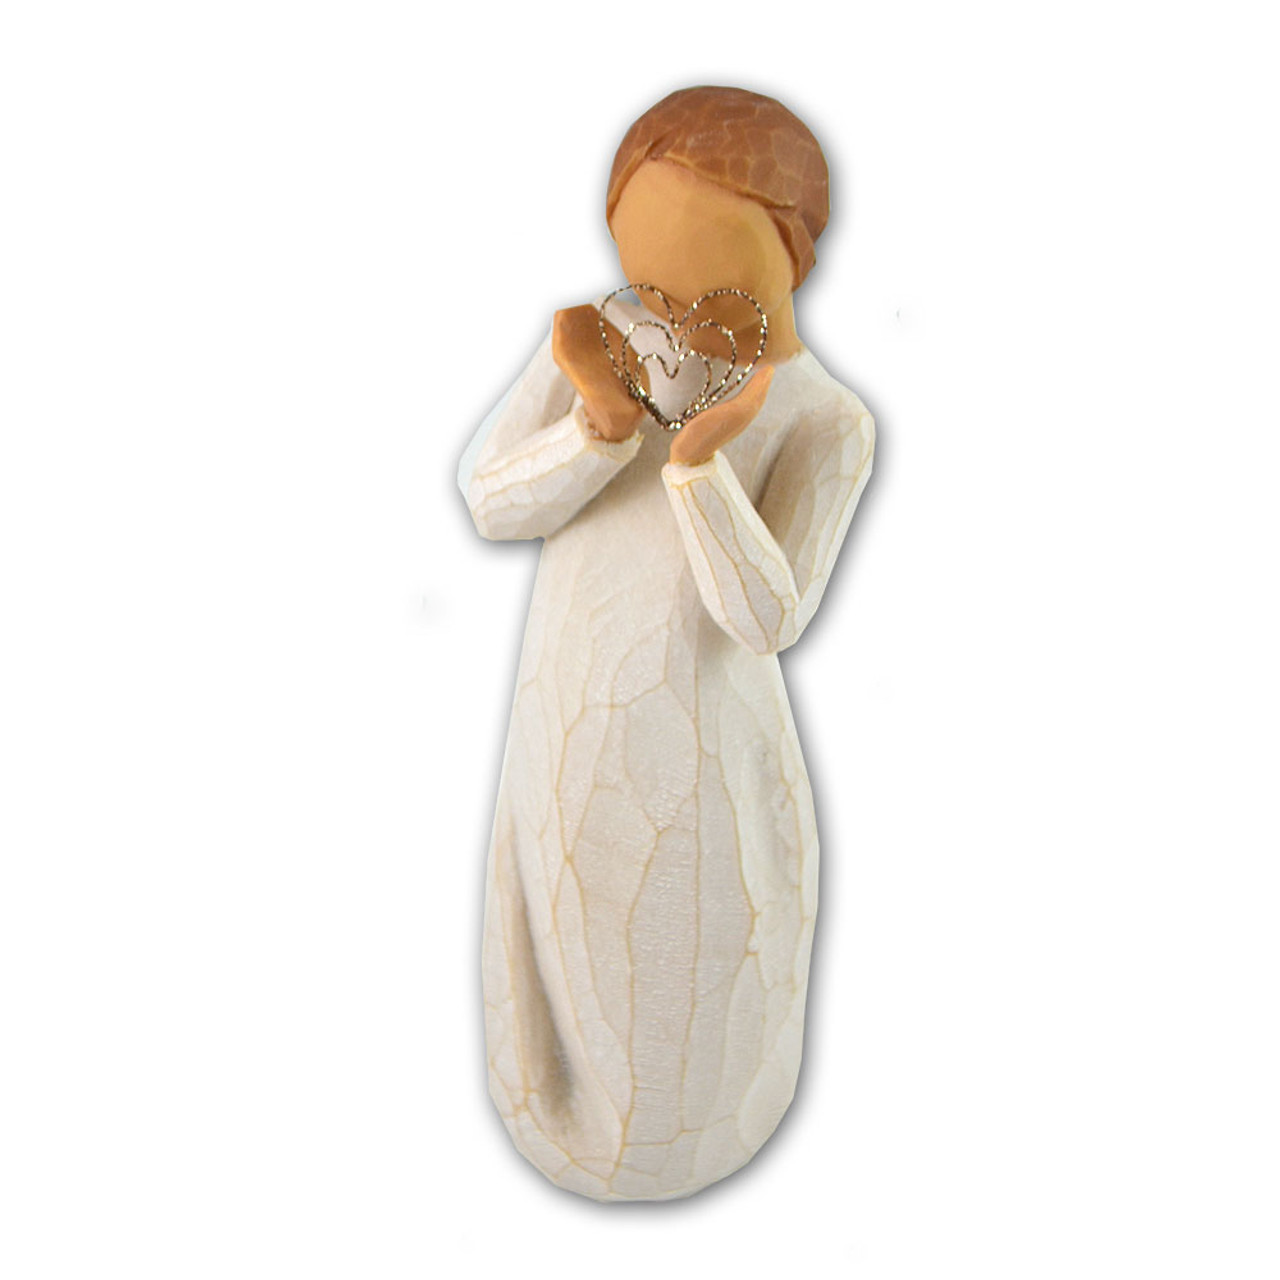 Lots of Love Willow Tree Figurine